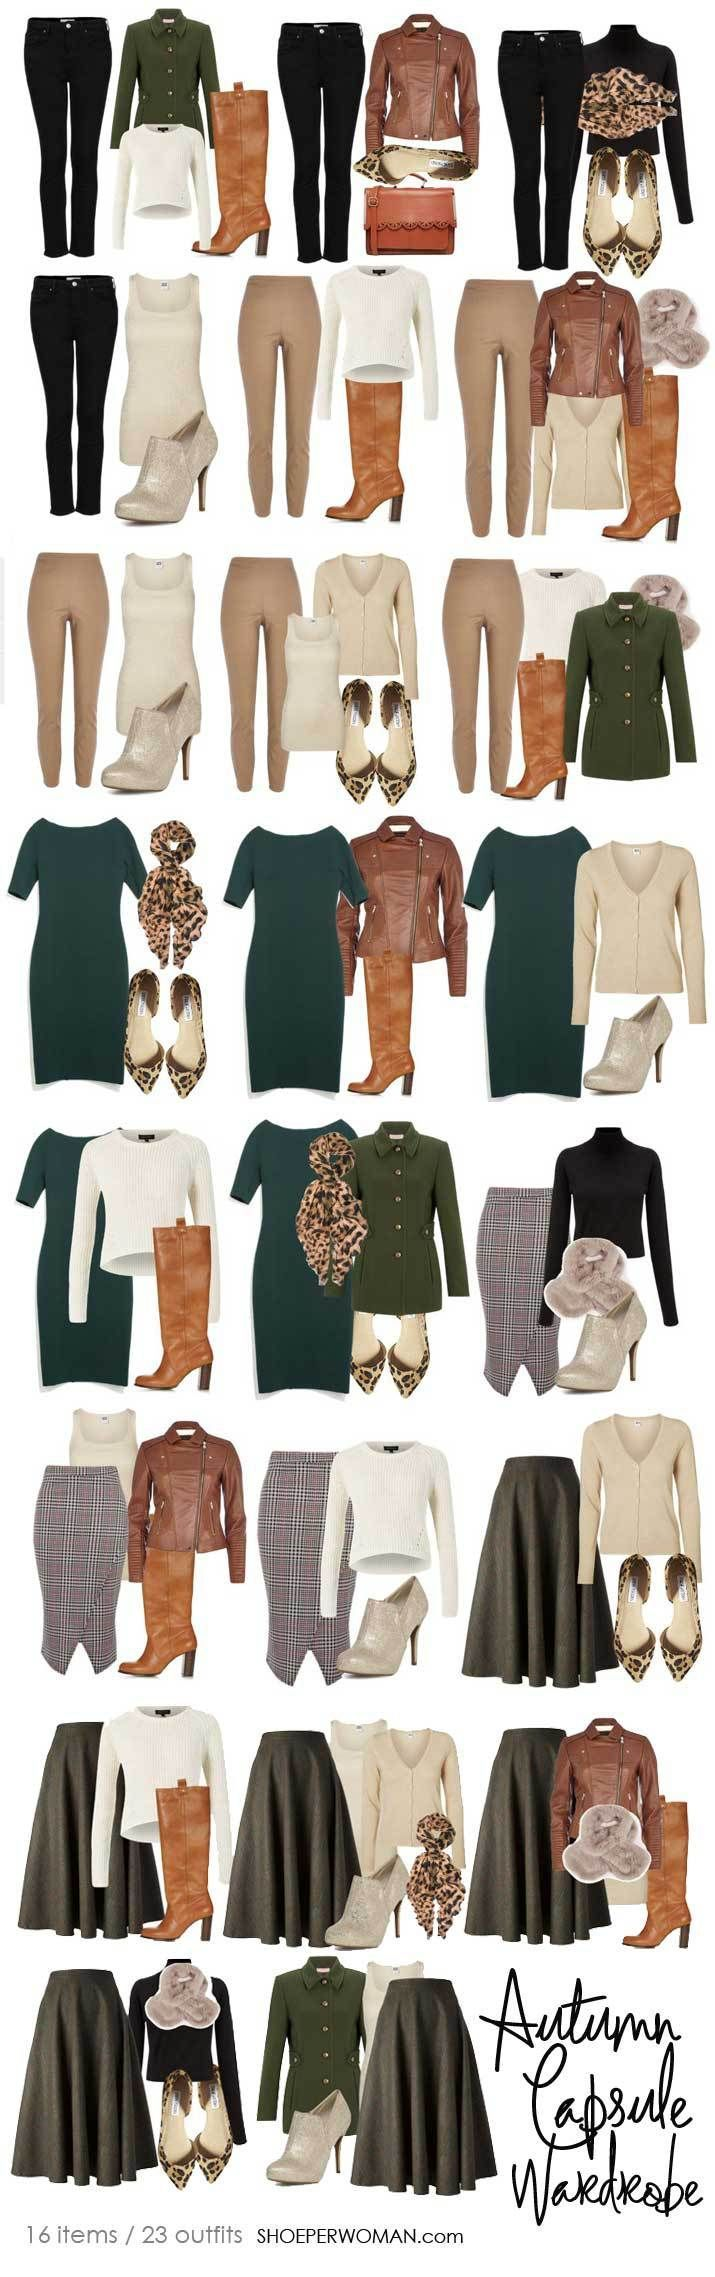 Autumn capsule wardrobe                                                                                                                                                                                 More